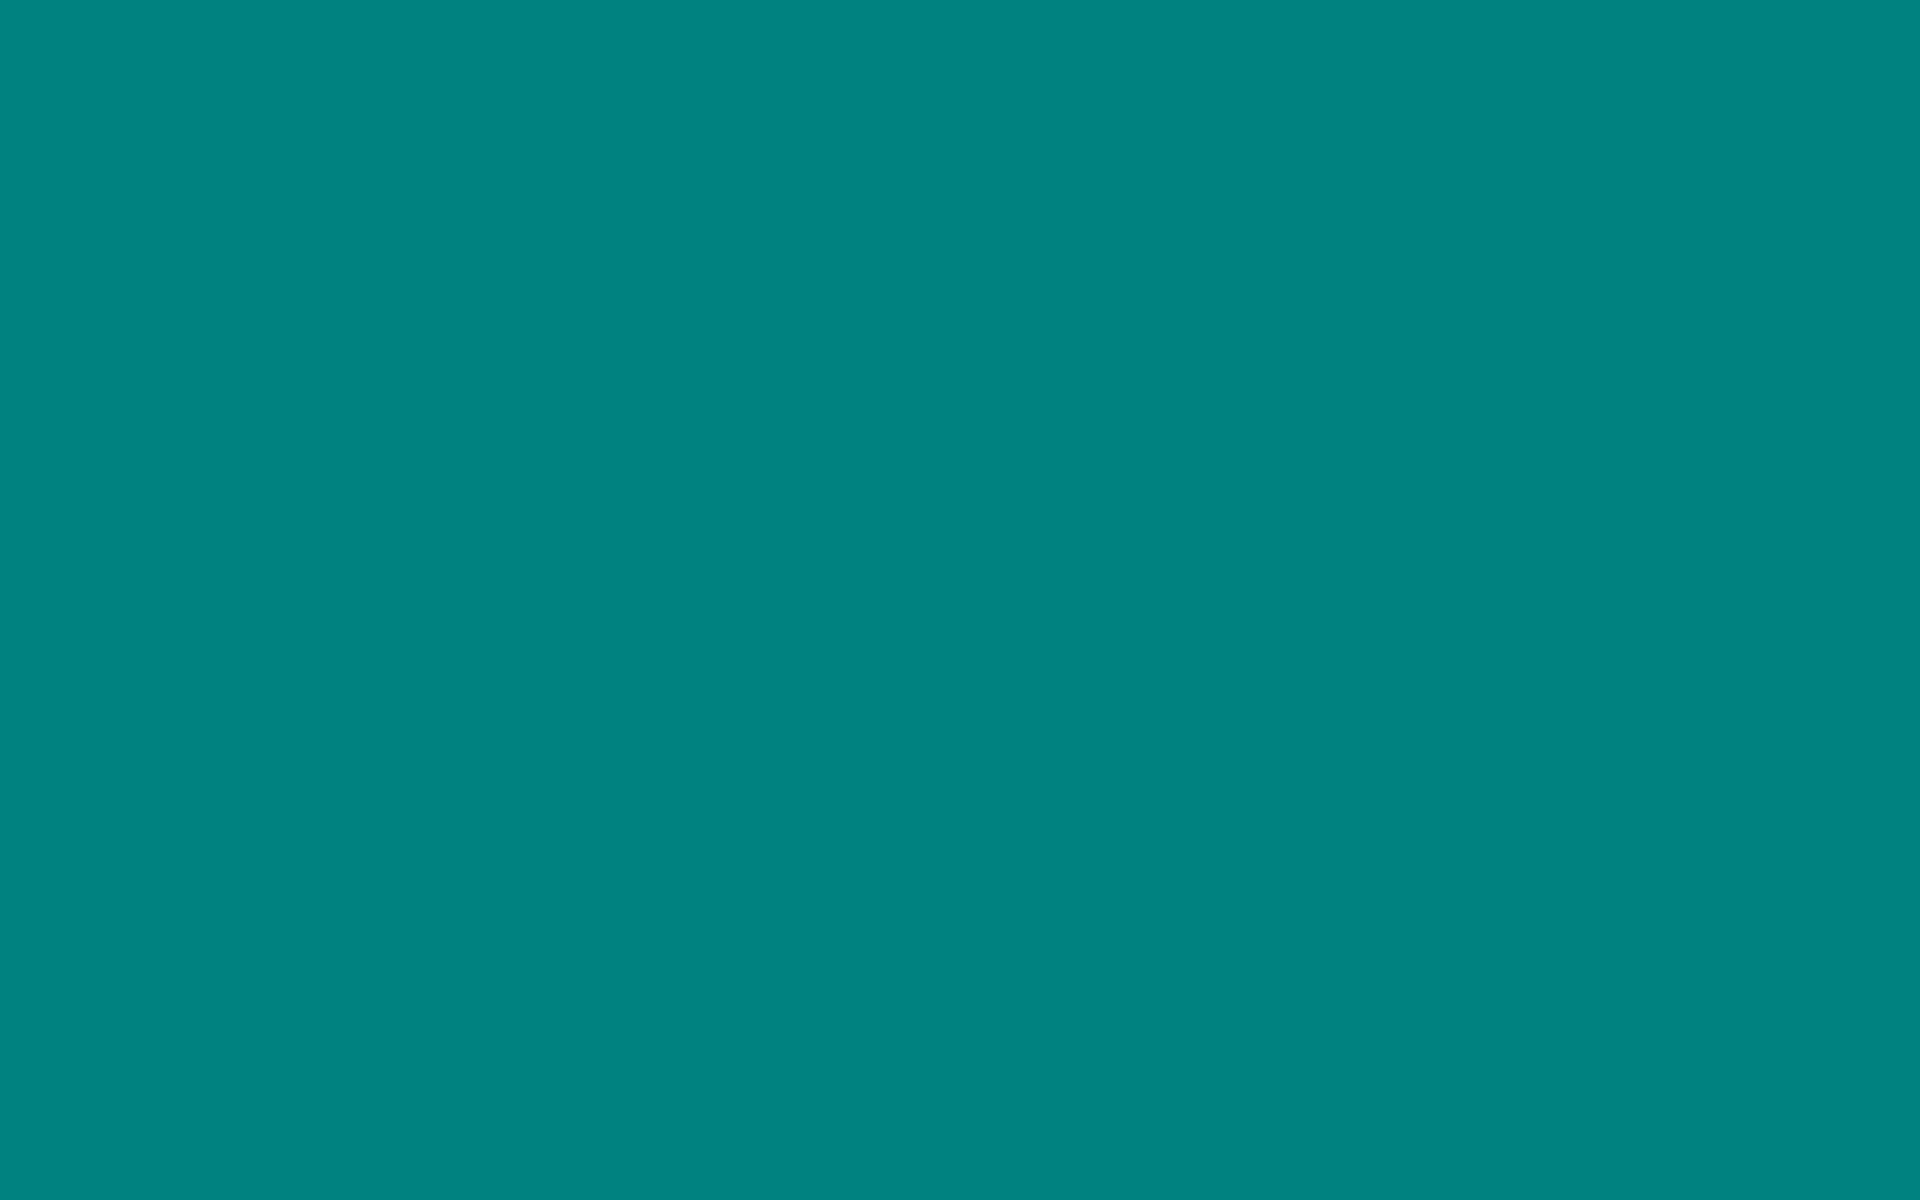 Teal color wallpaper high definition high quality What color is teal